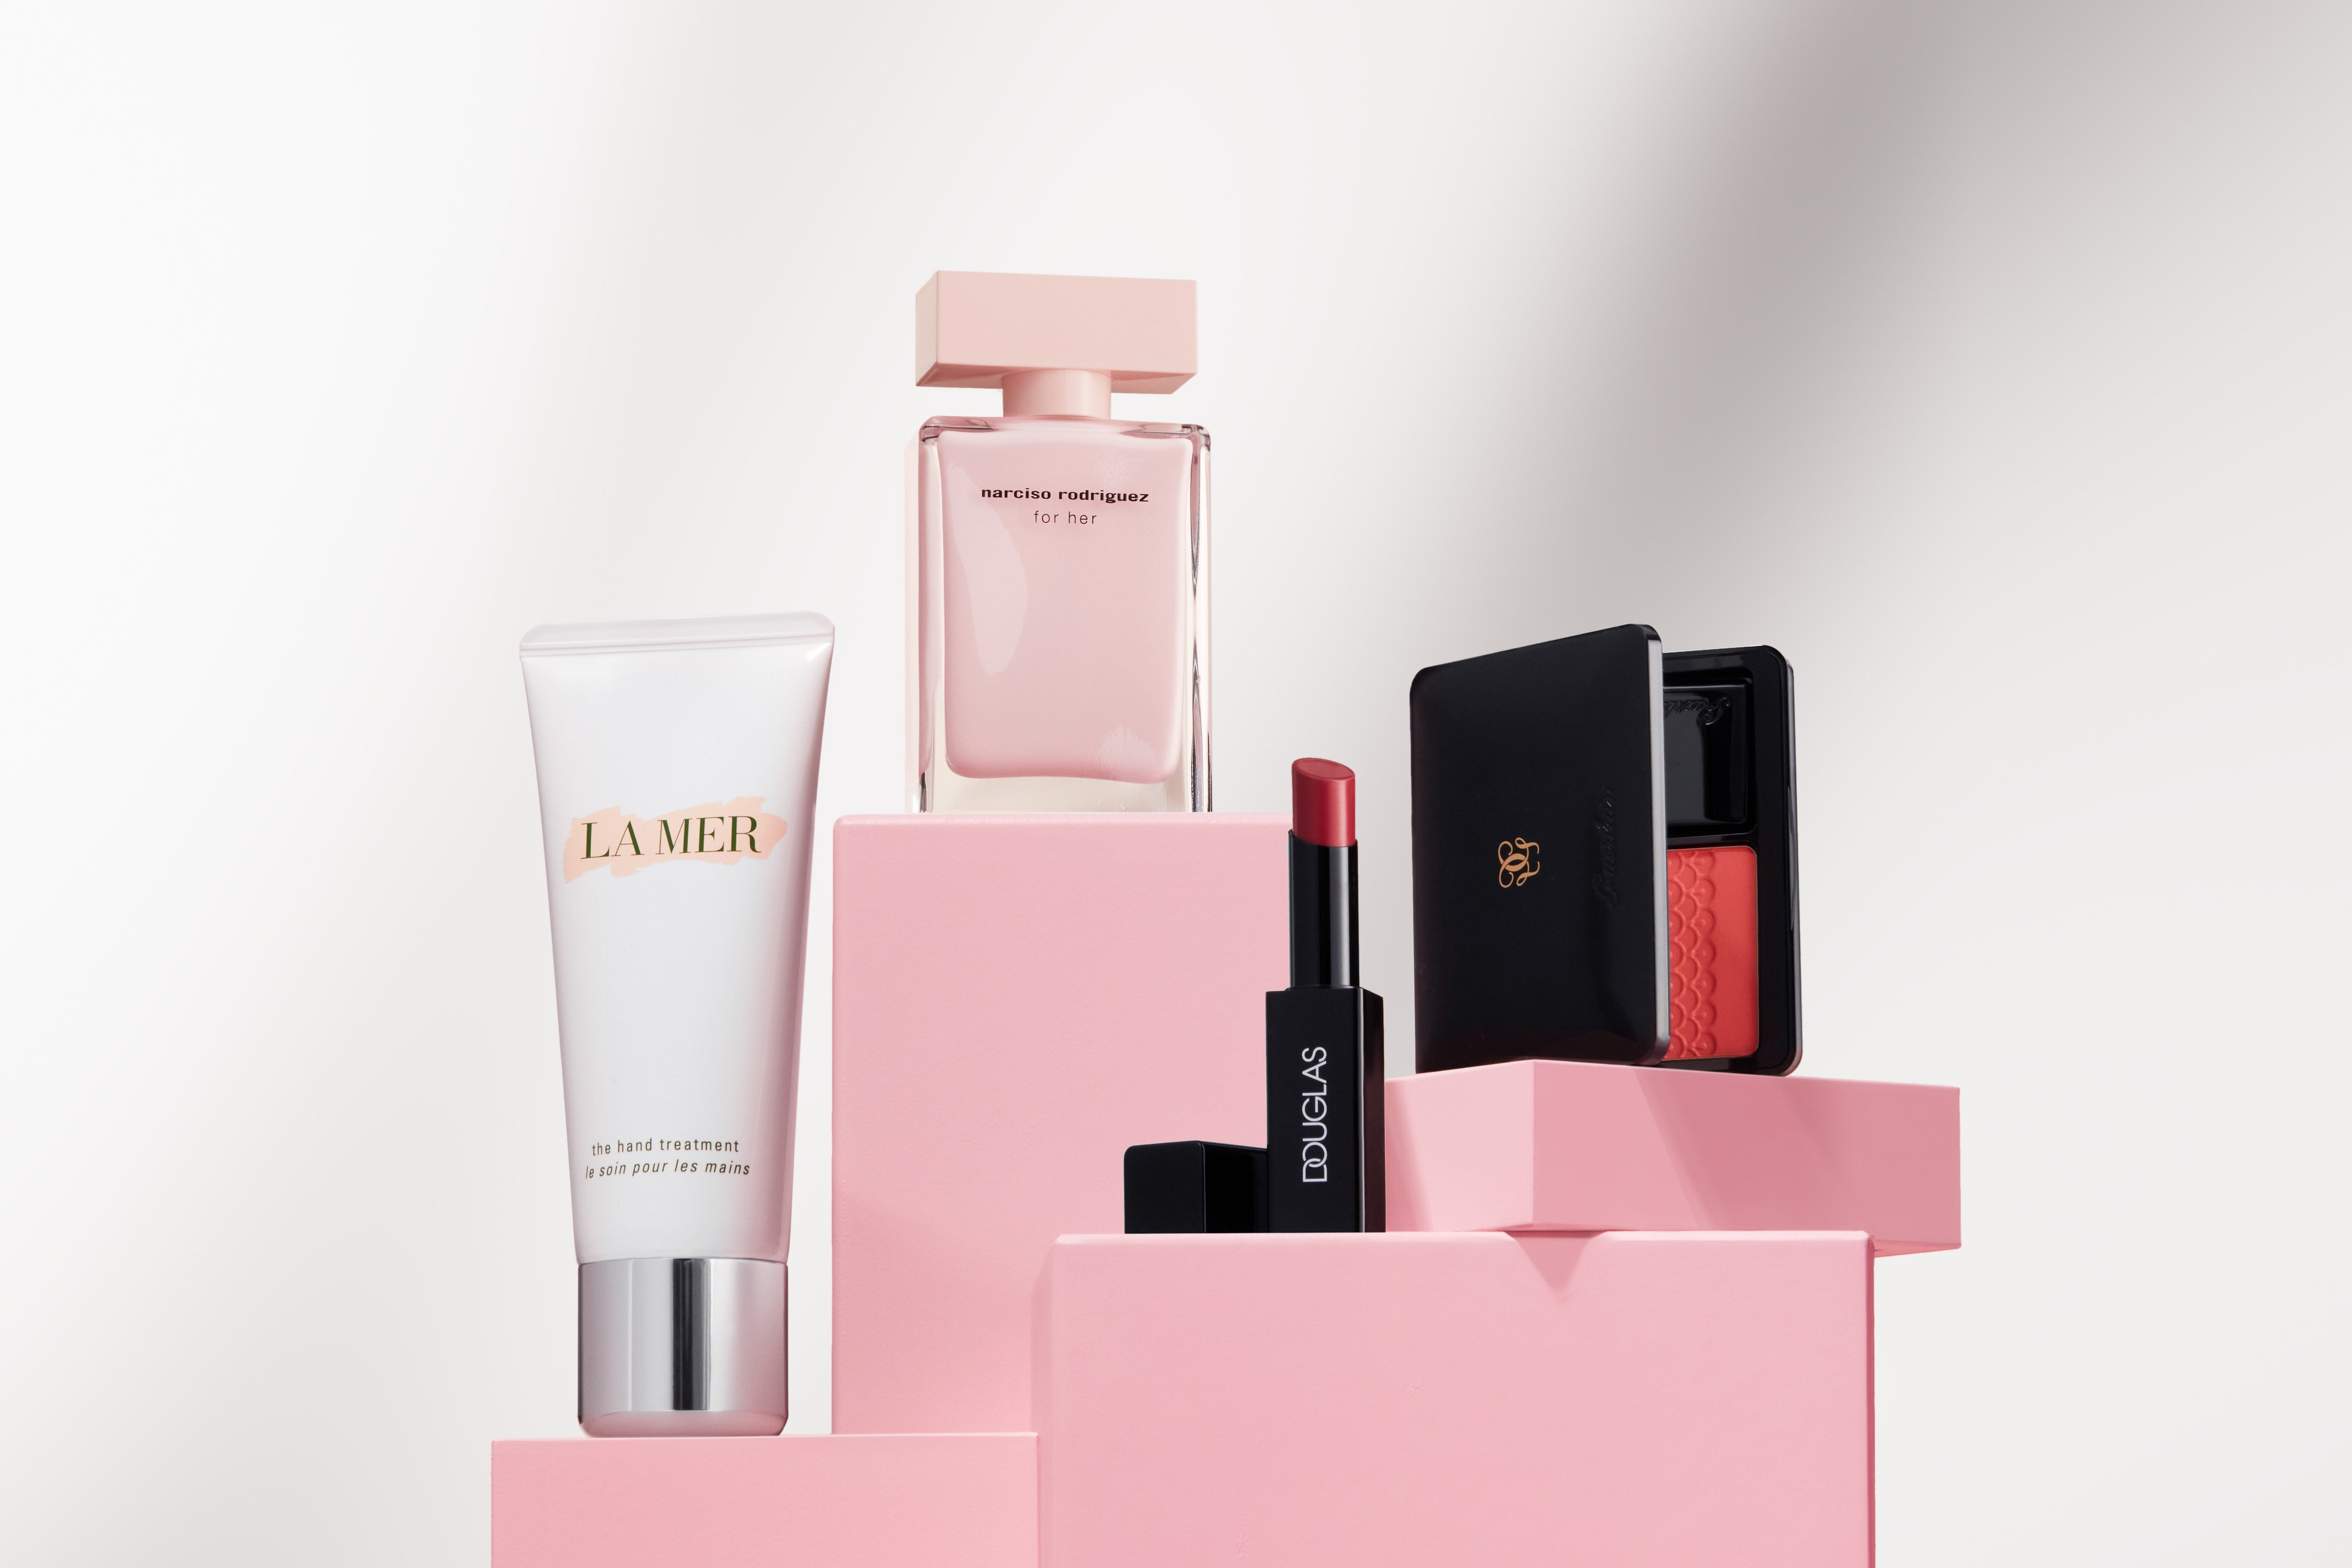 Crosscategory-product-narciso-lamer-dc-guerlain-pink-cubes-white-room-horizontal-unlimited-Web-Rendition